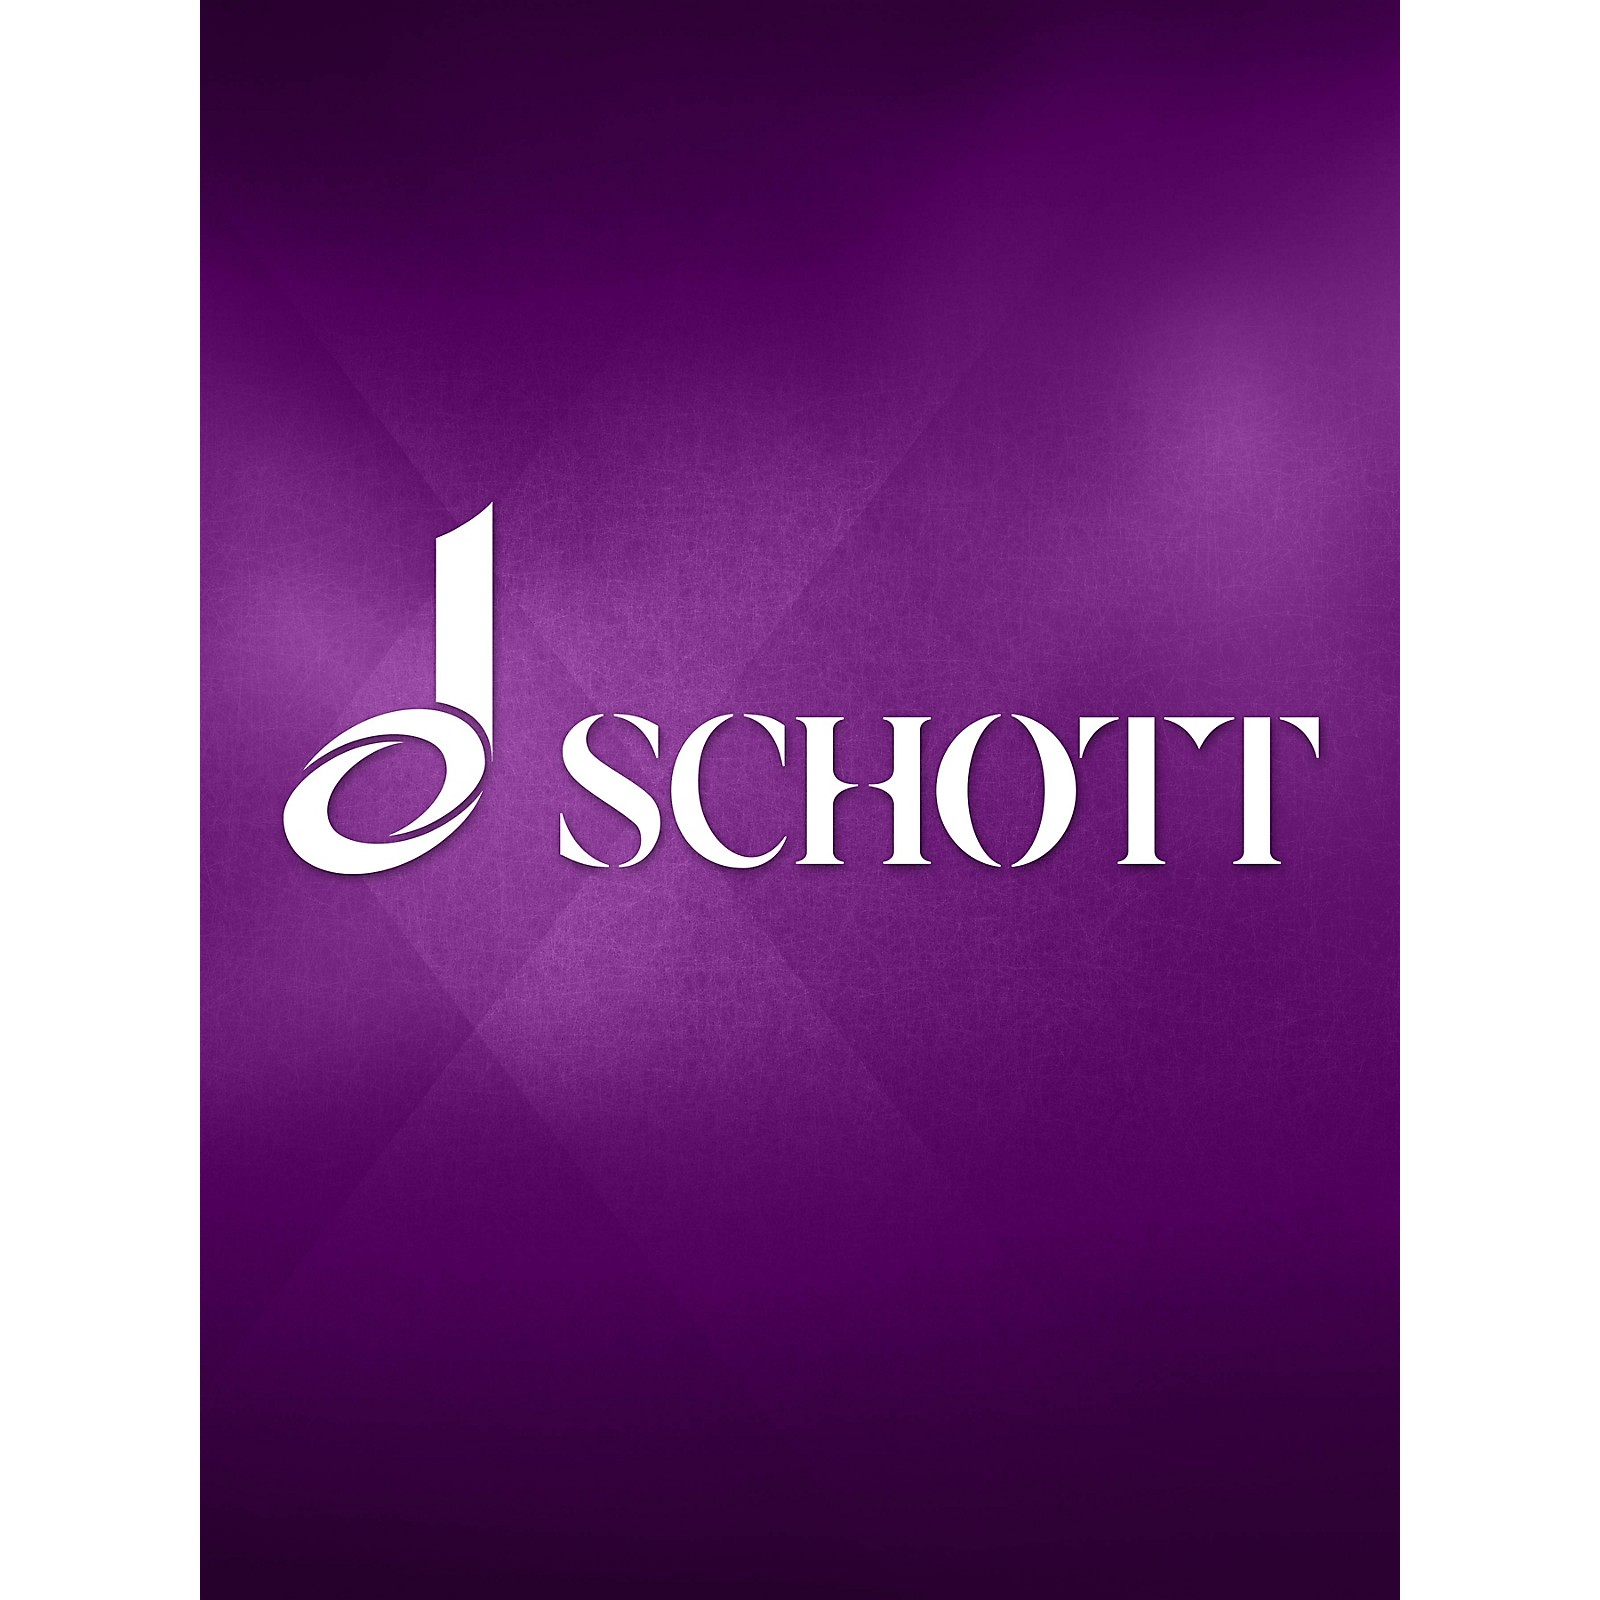 Schott Organ Concerto 12 Op. 7, No. 6 B flat Major Schott Series Composed by Georg Friedrich Händel